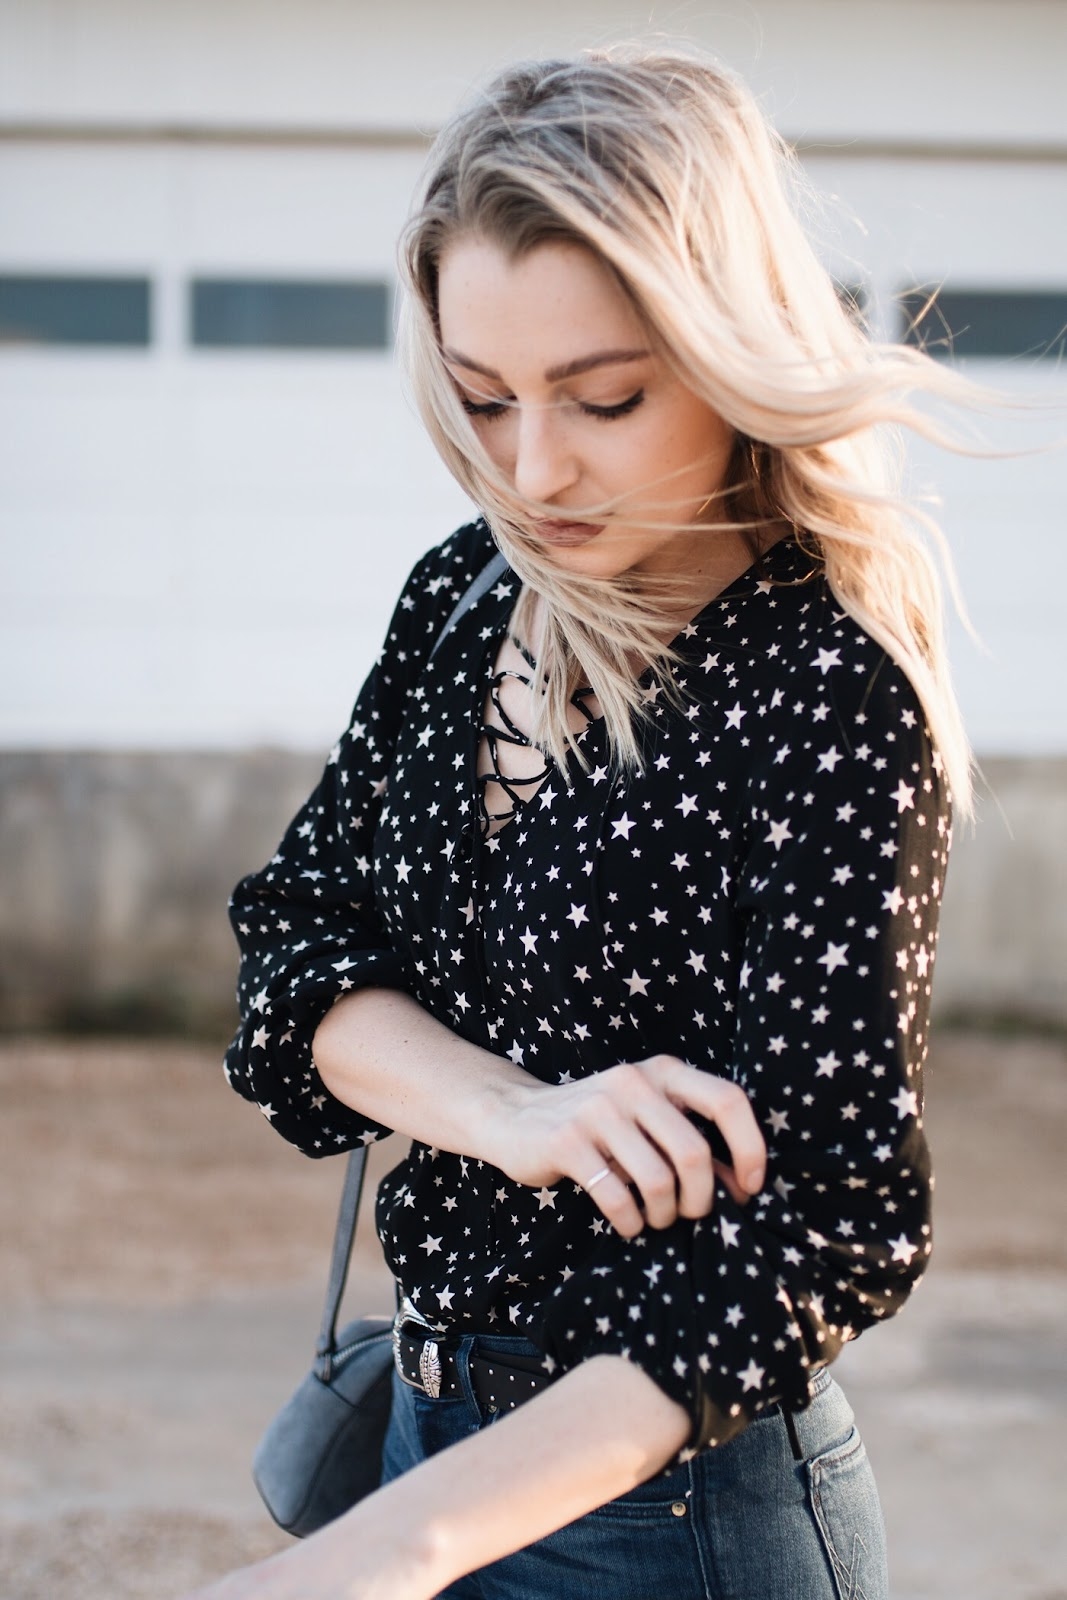 Lace-up star top